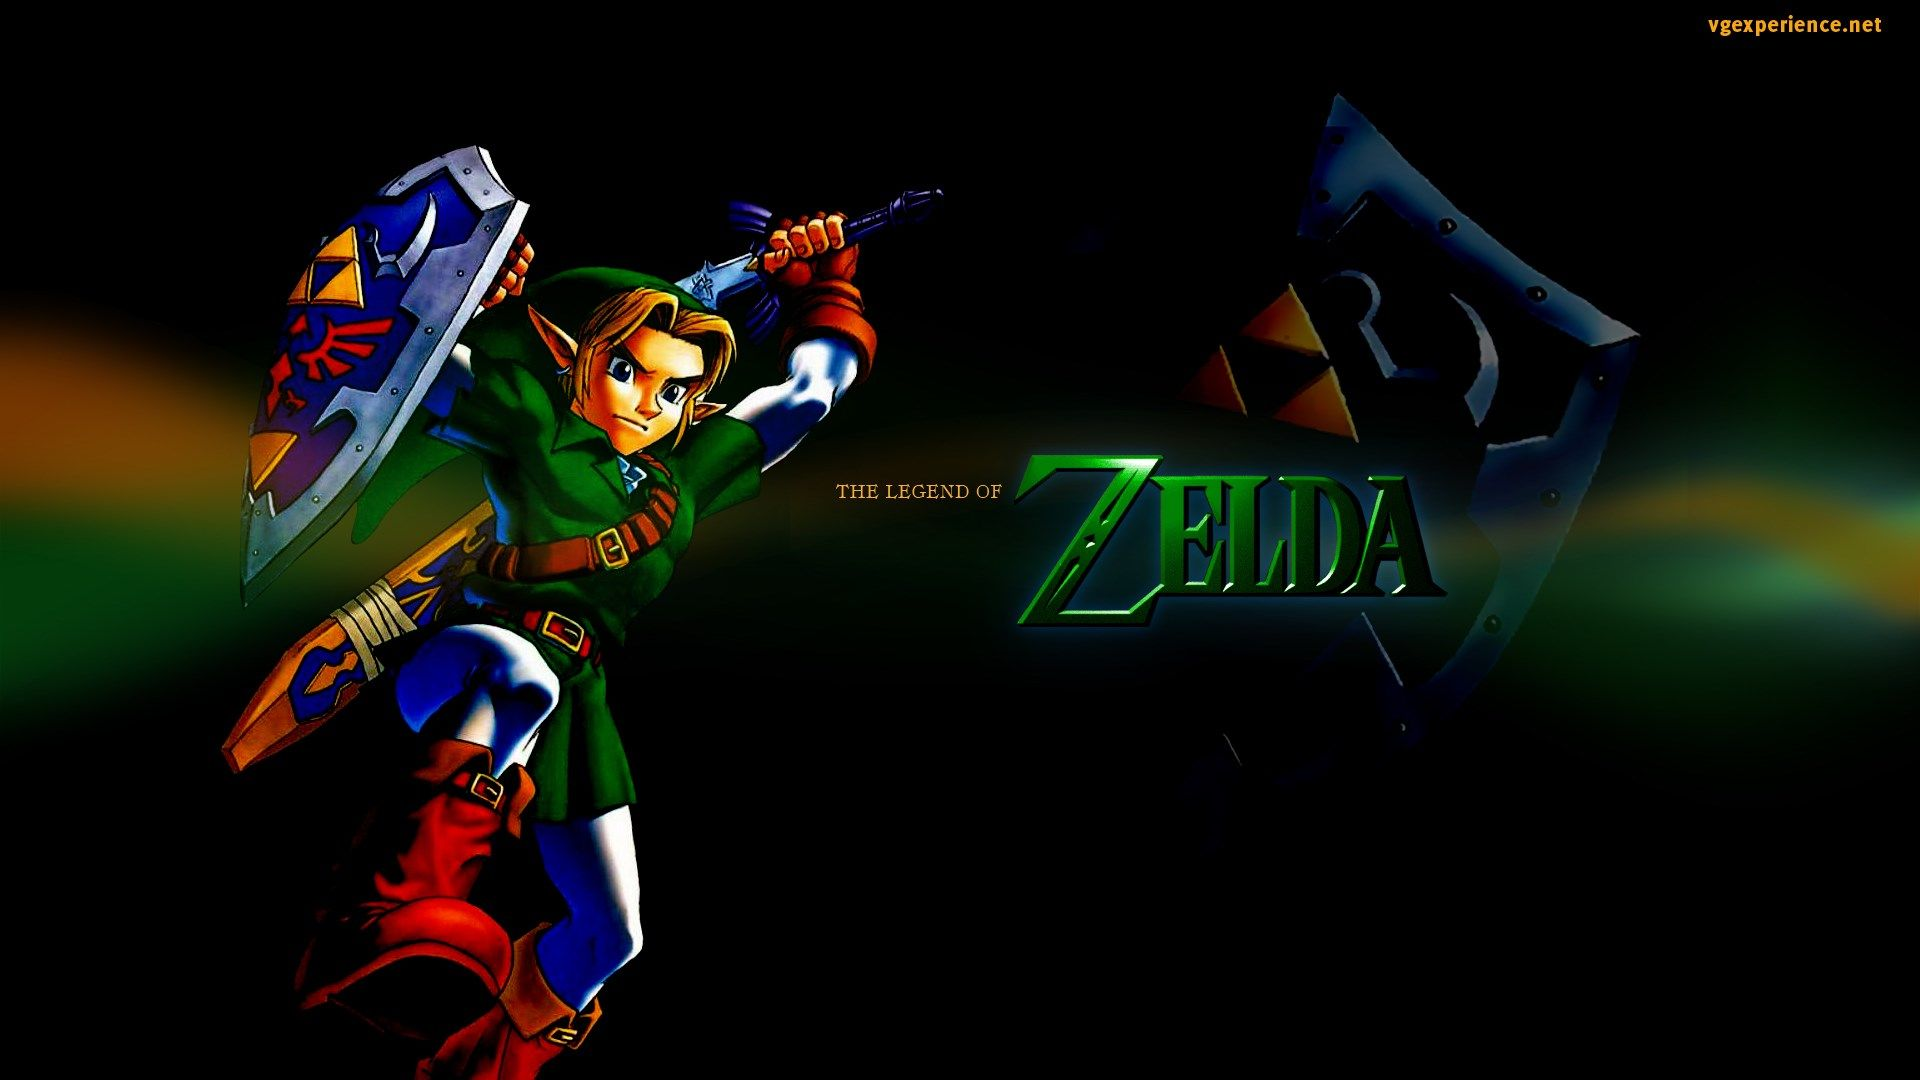 1920x1080 Hd Wallpaper The Legend Of Zelda Ocarina Of Time